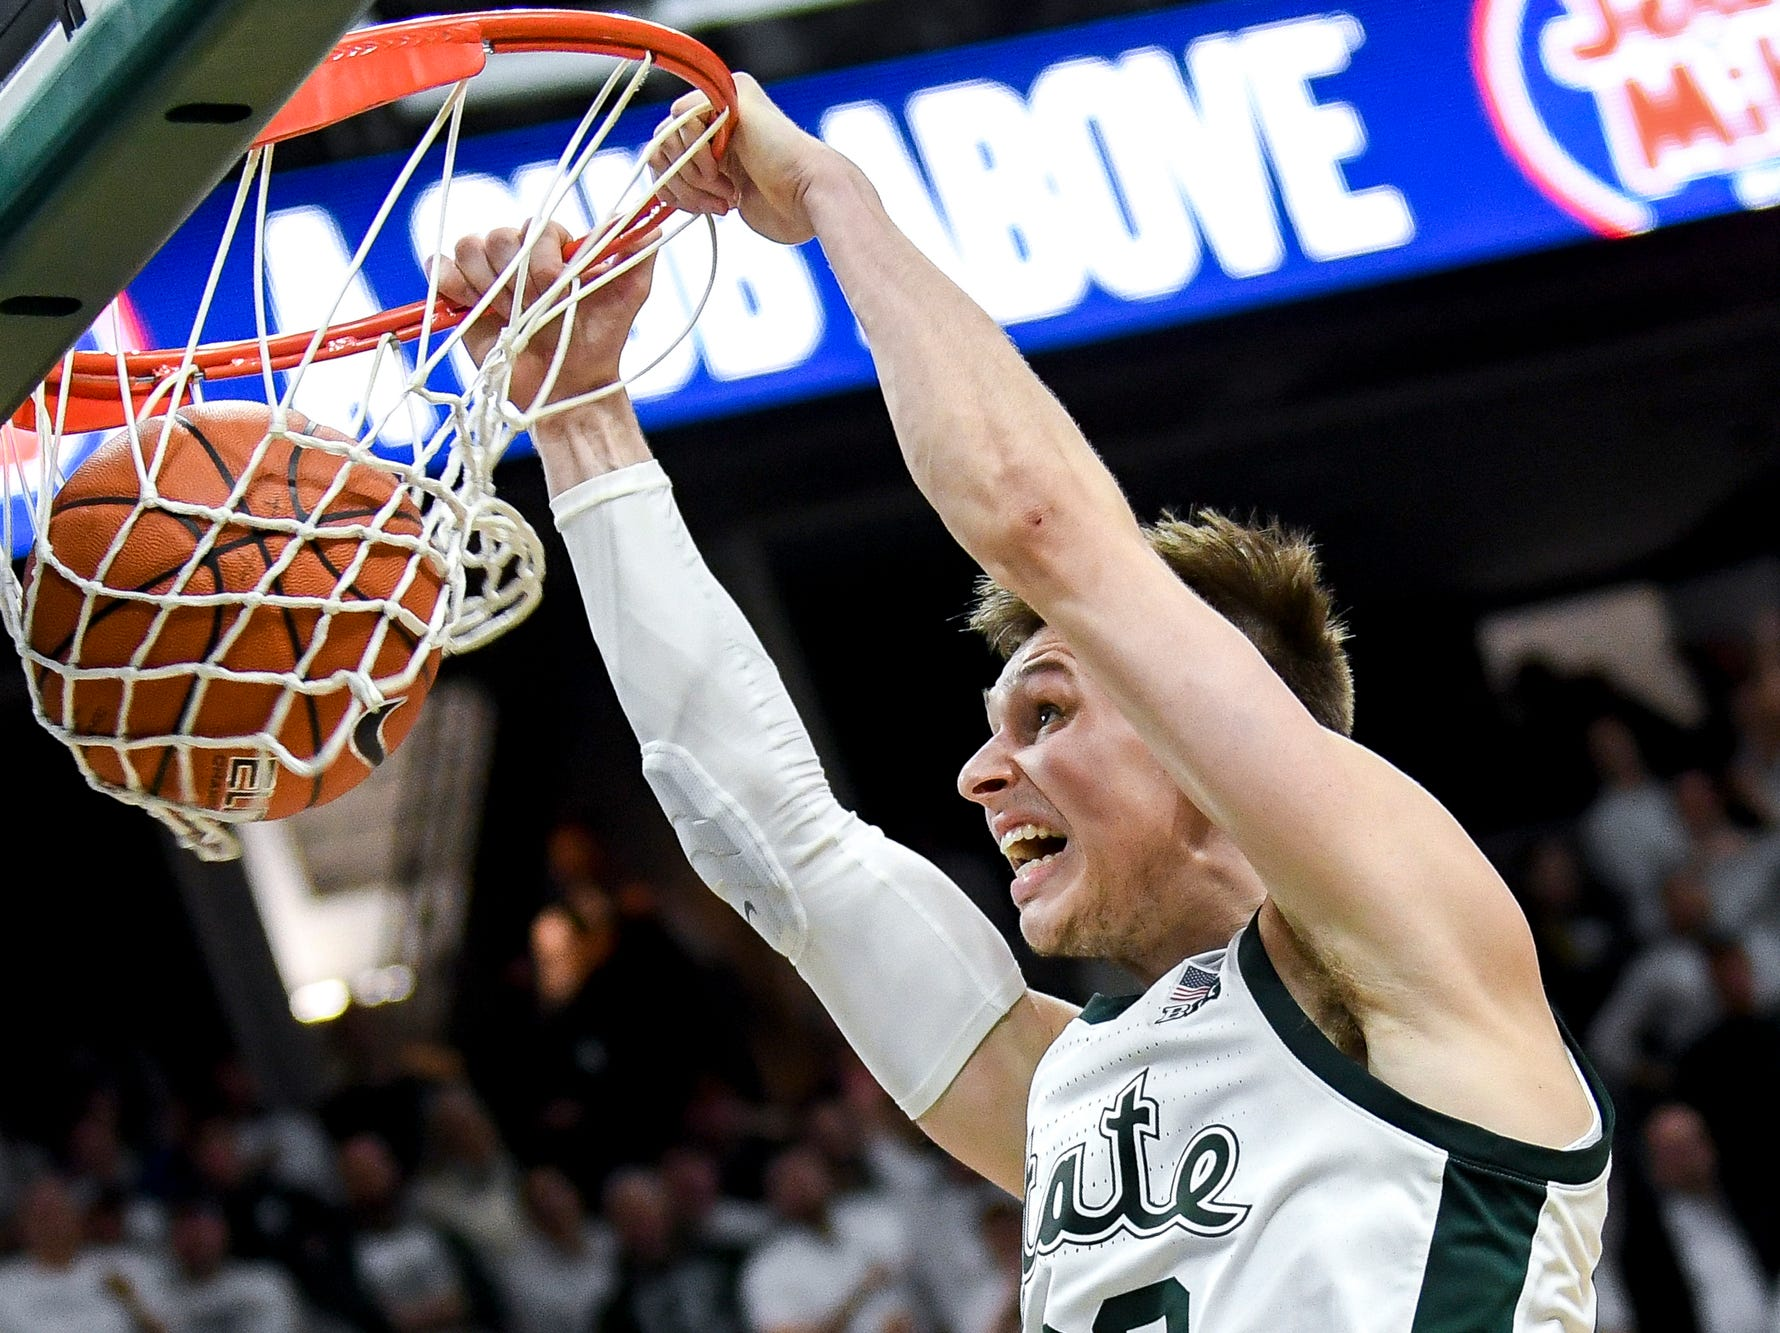 Michigan State's Matt McQuaid dunks during the second half on Saturday, March 9, 2019, at the Breslin Center in East Lansing.